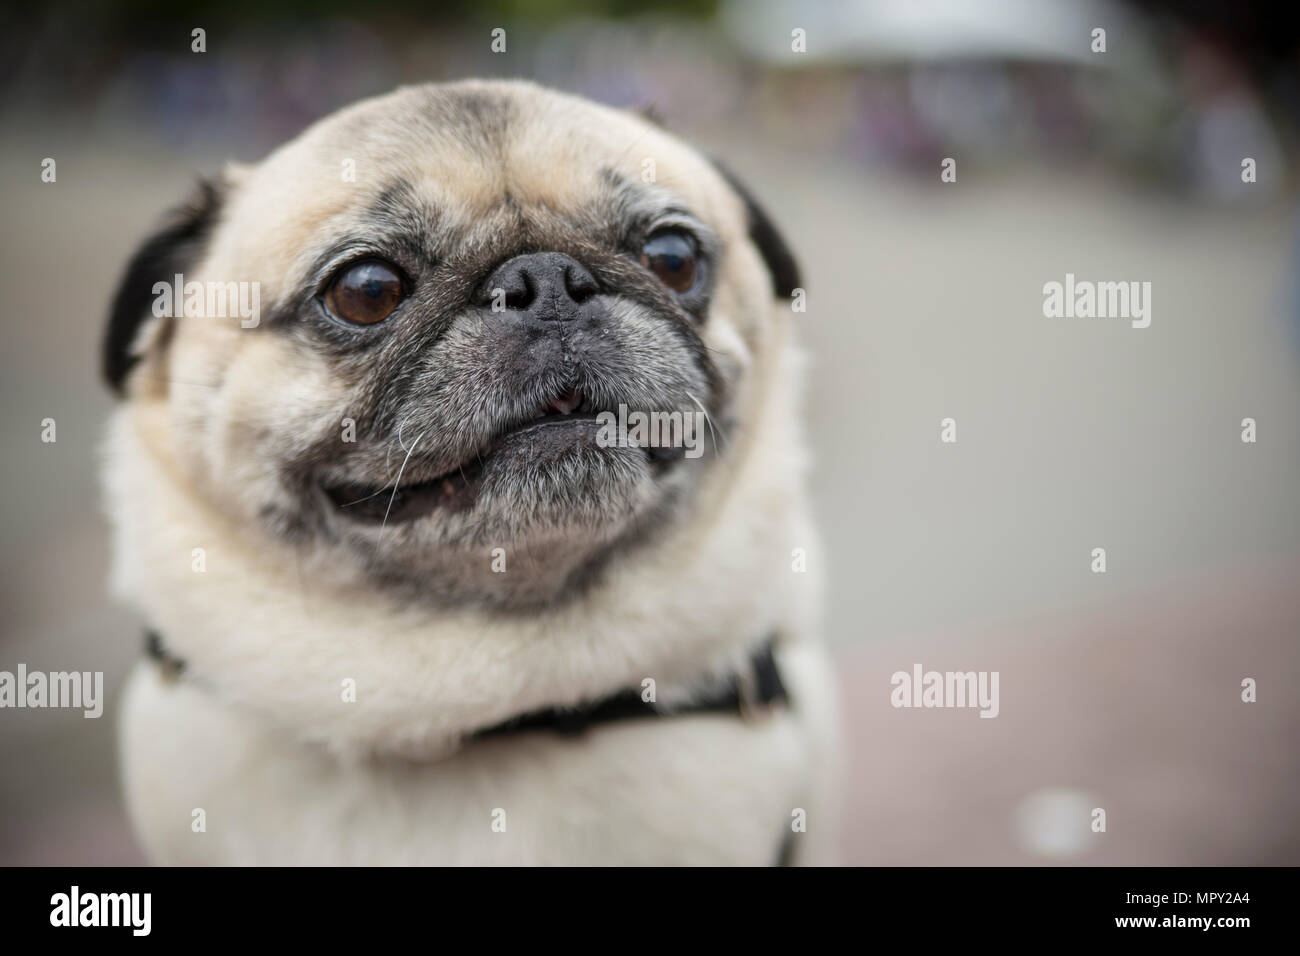 Close-up of pug looking away sitting outdoors - Stock Image